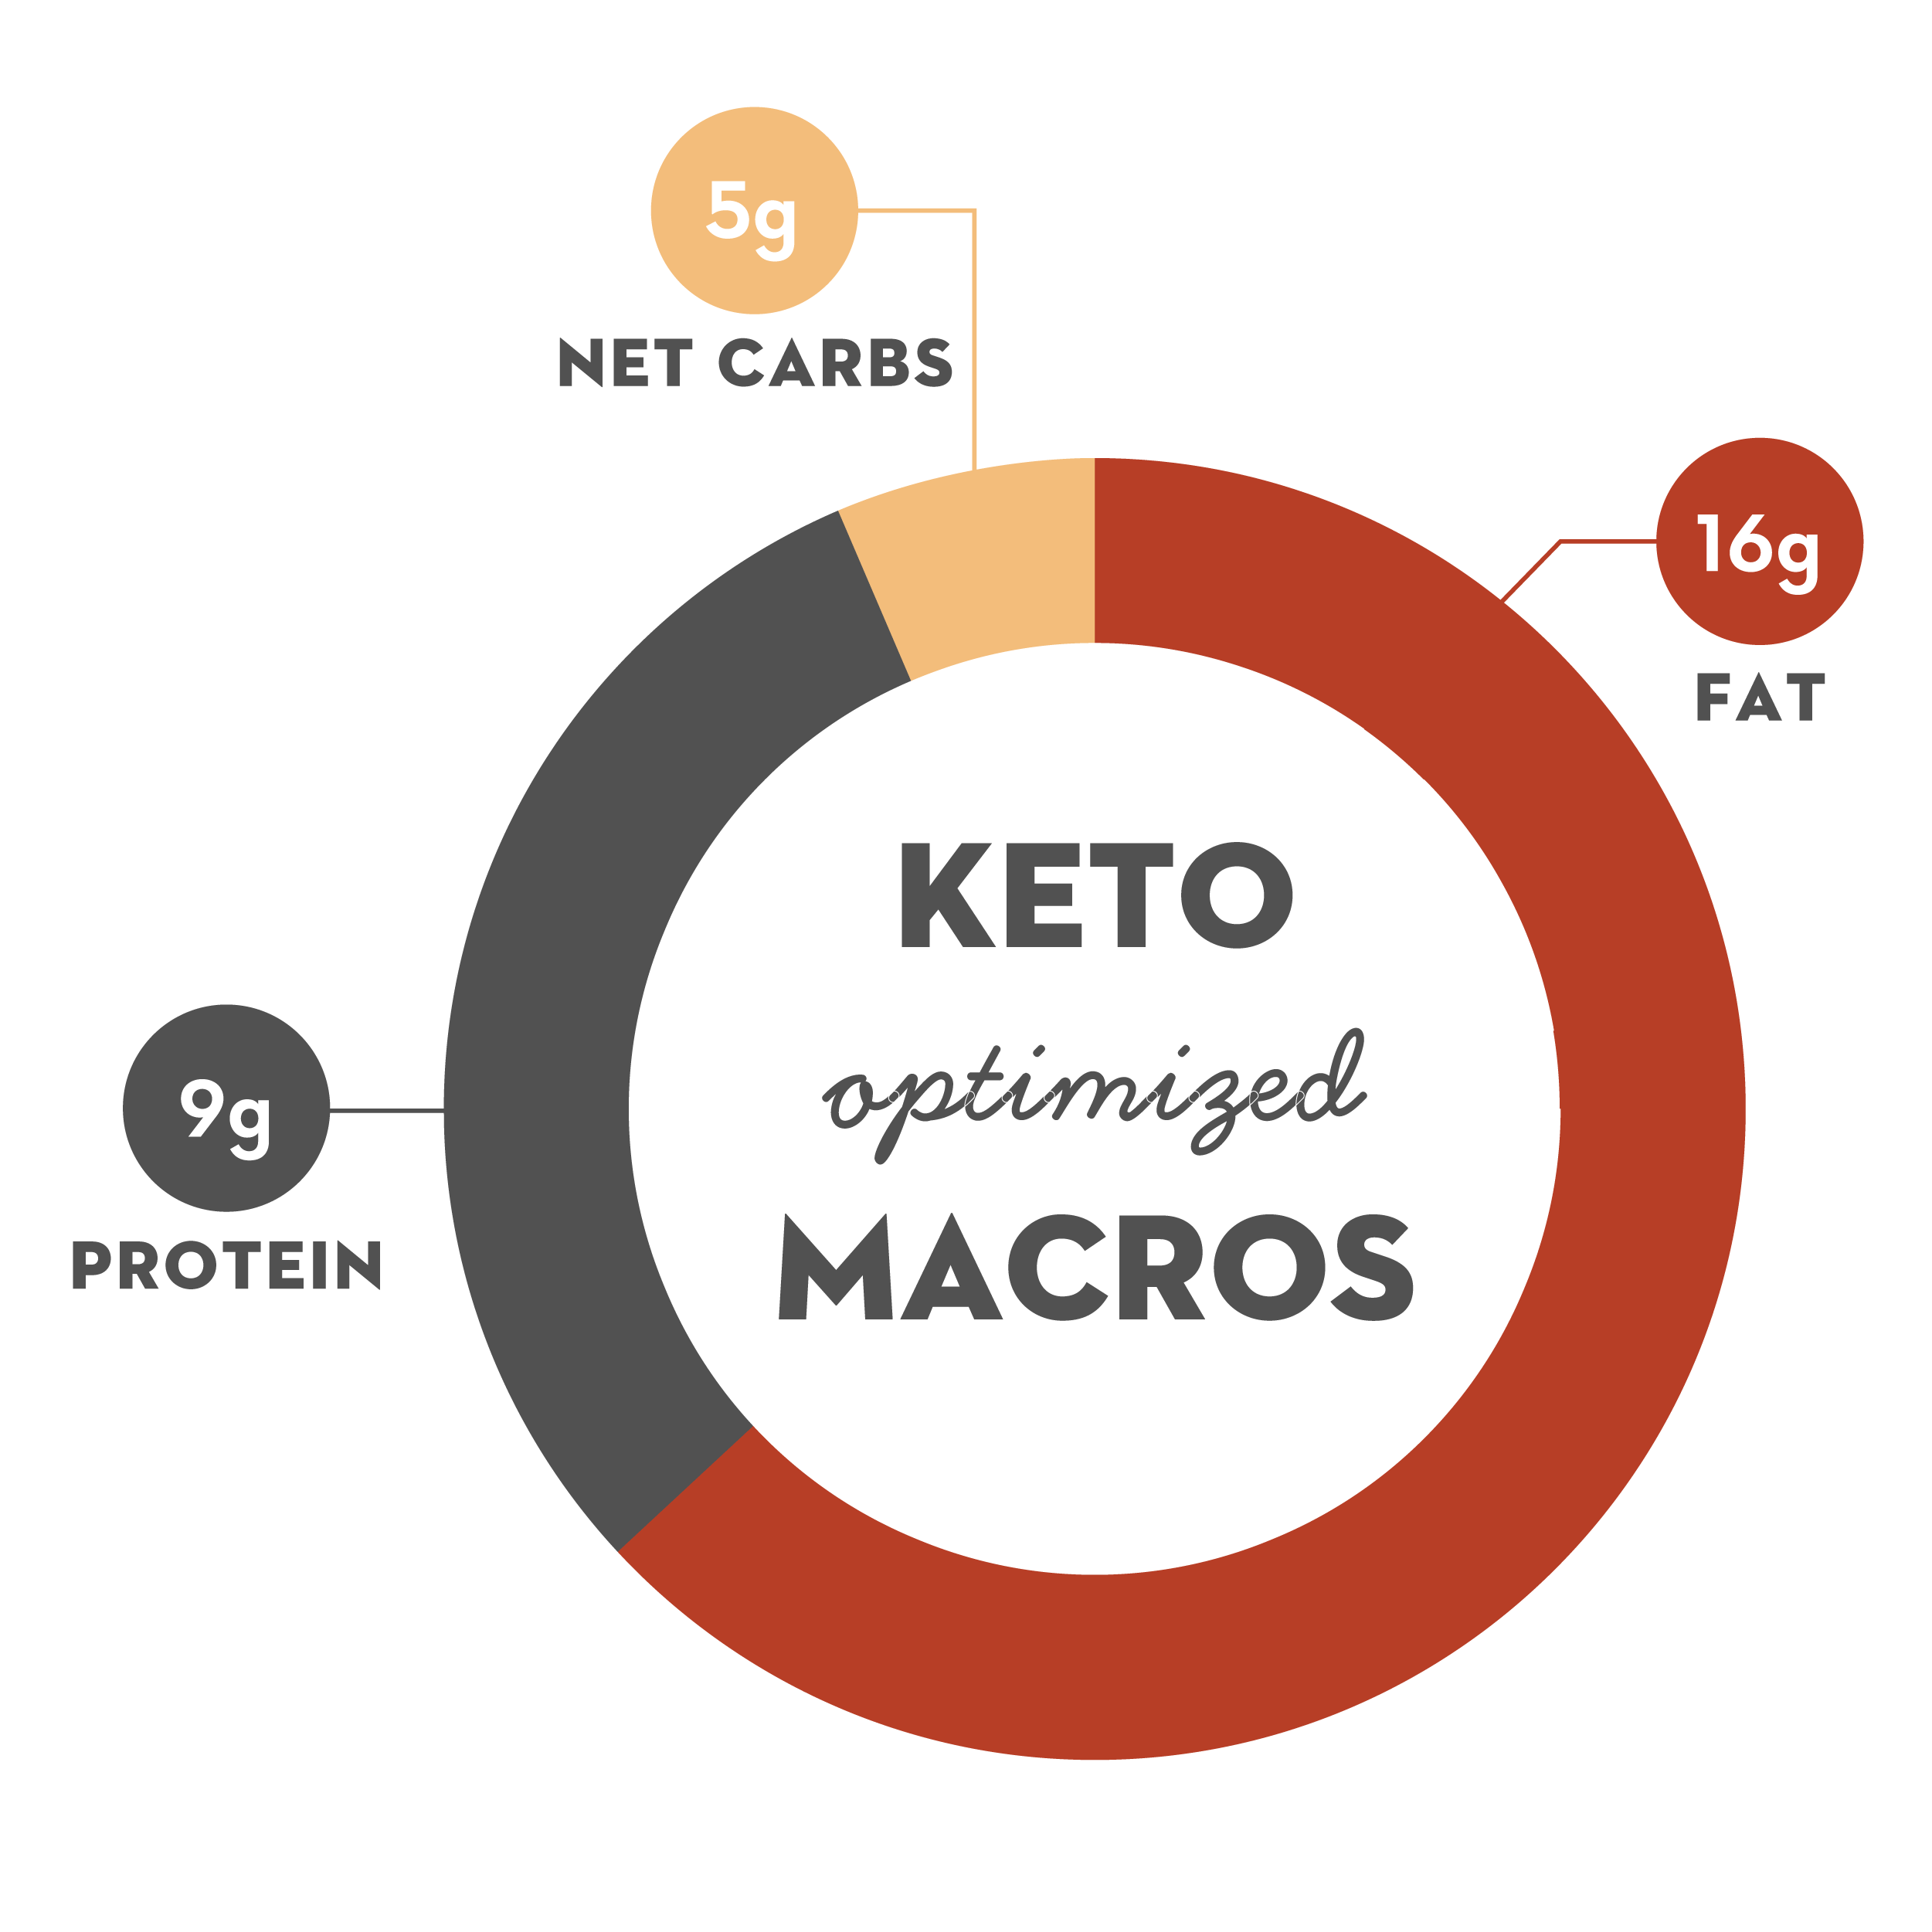 Saigon Cinnamon Chocolate Keto Dang Bar Ketogenic Optimized Macros